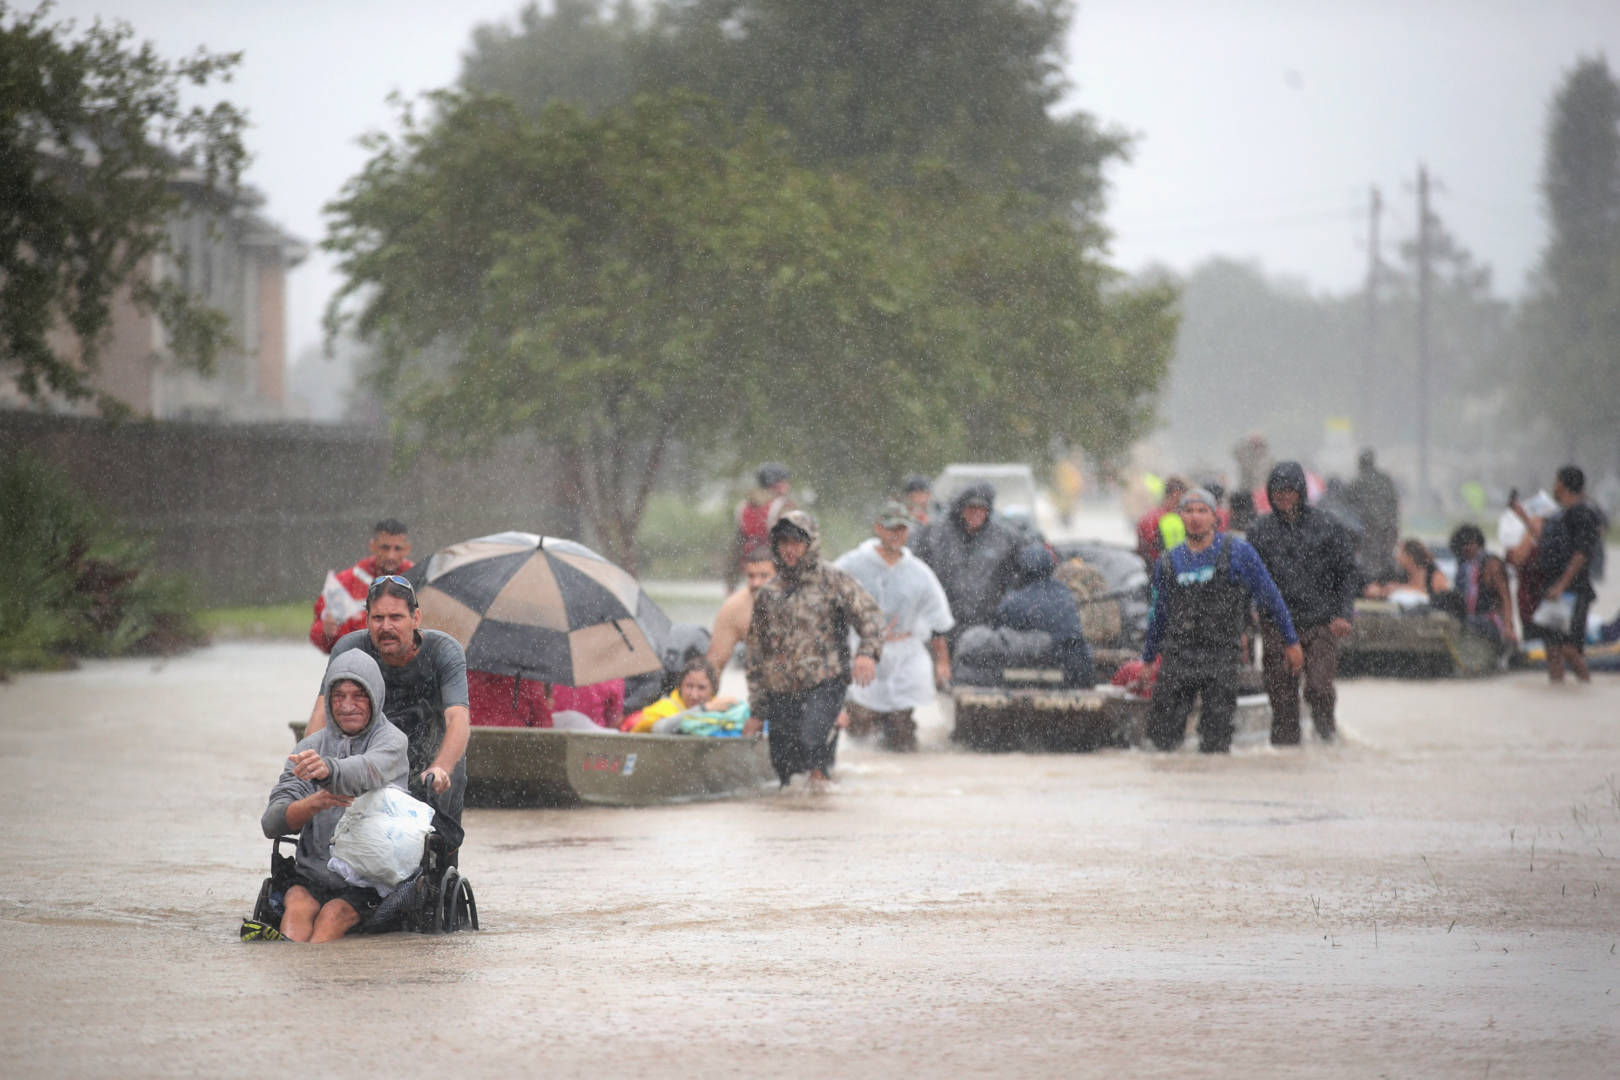 2017 Hurricane Harvey: Facts, FAQs, and how to help | World